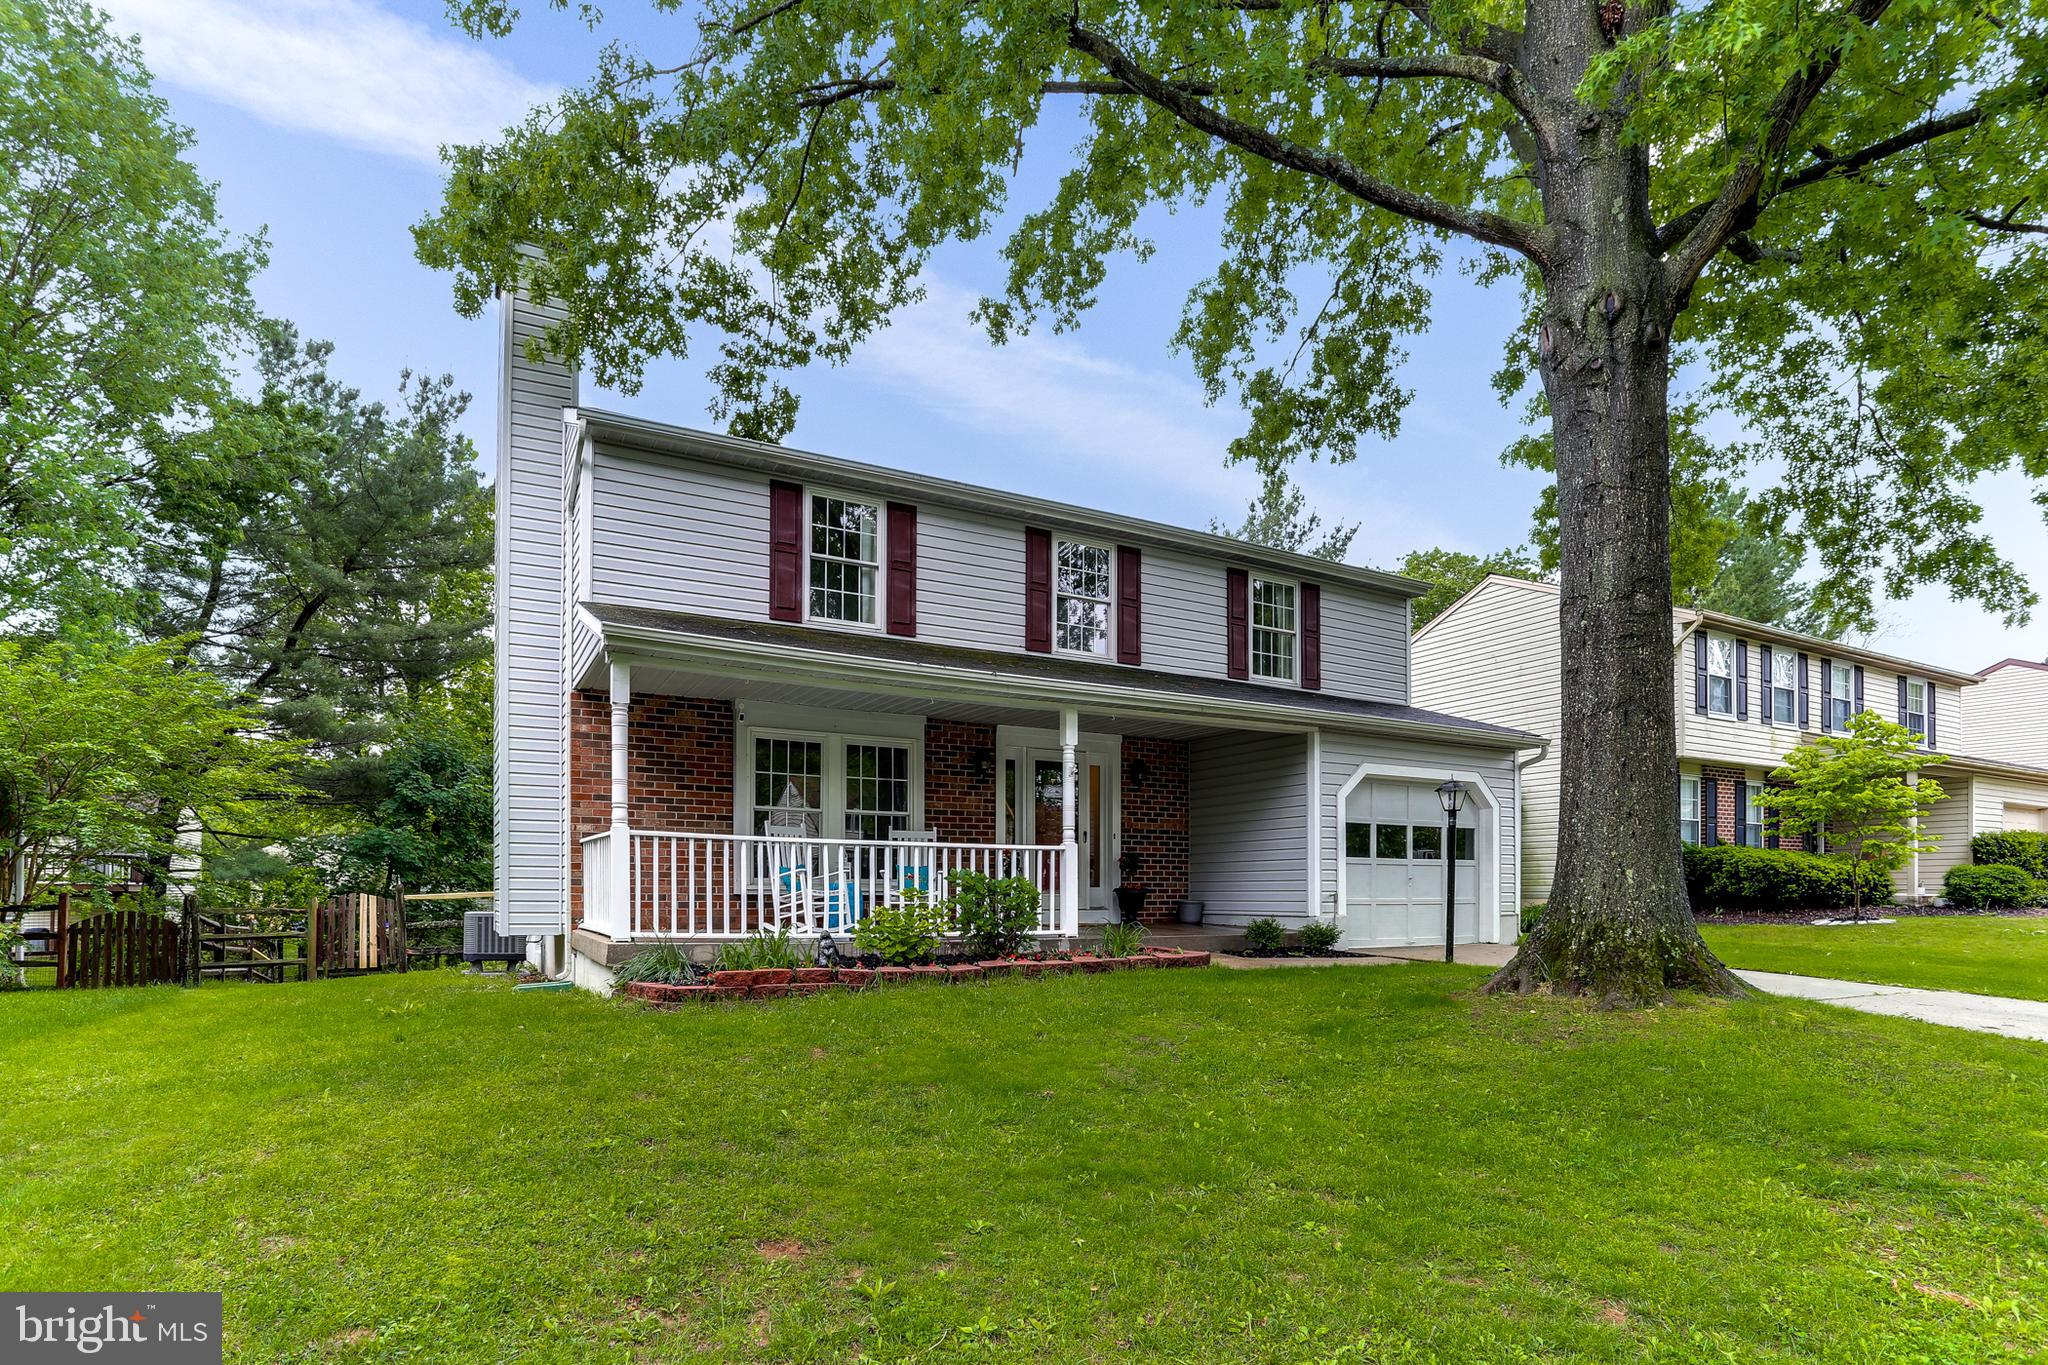 8046 ANDIRON LANE, JESSUP, MD 20794